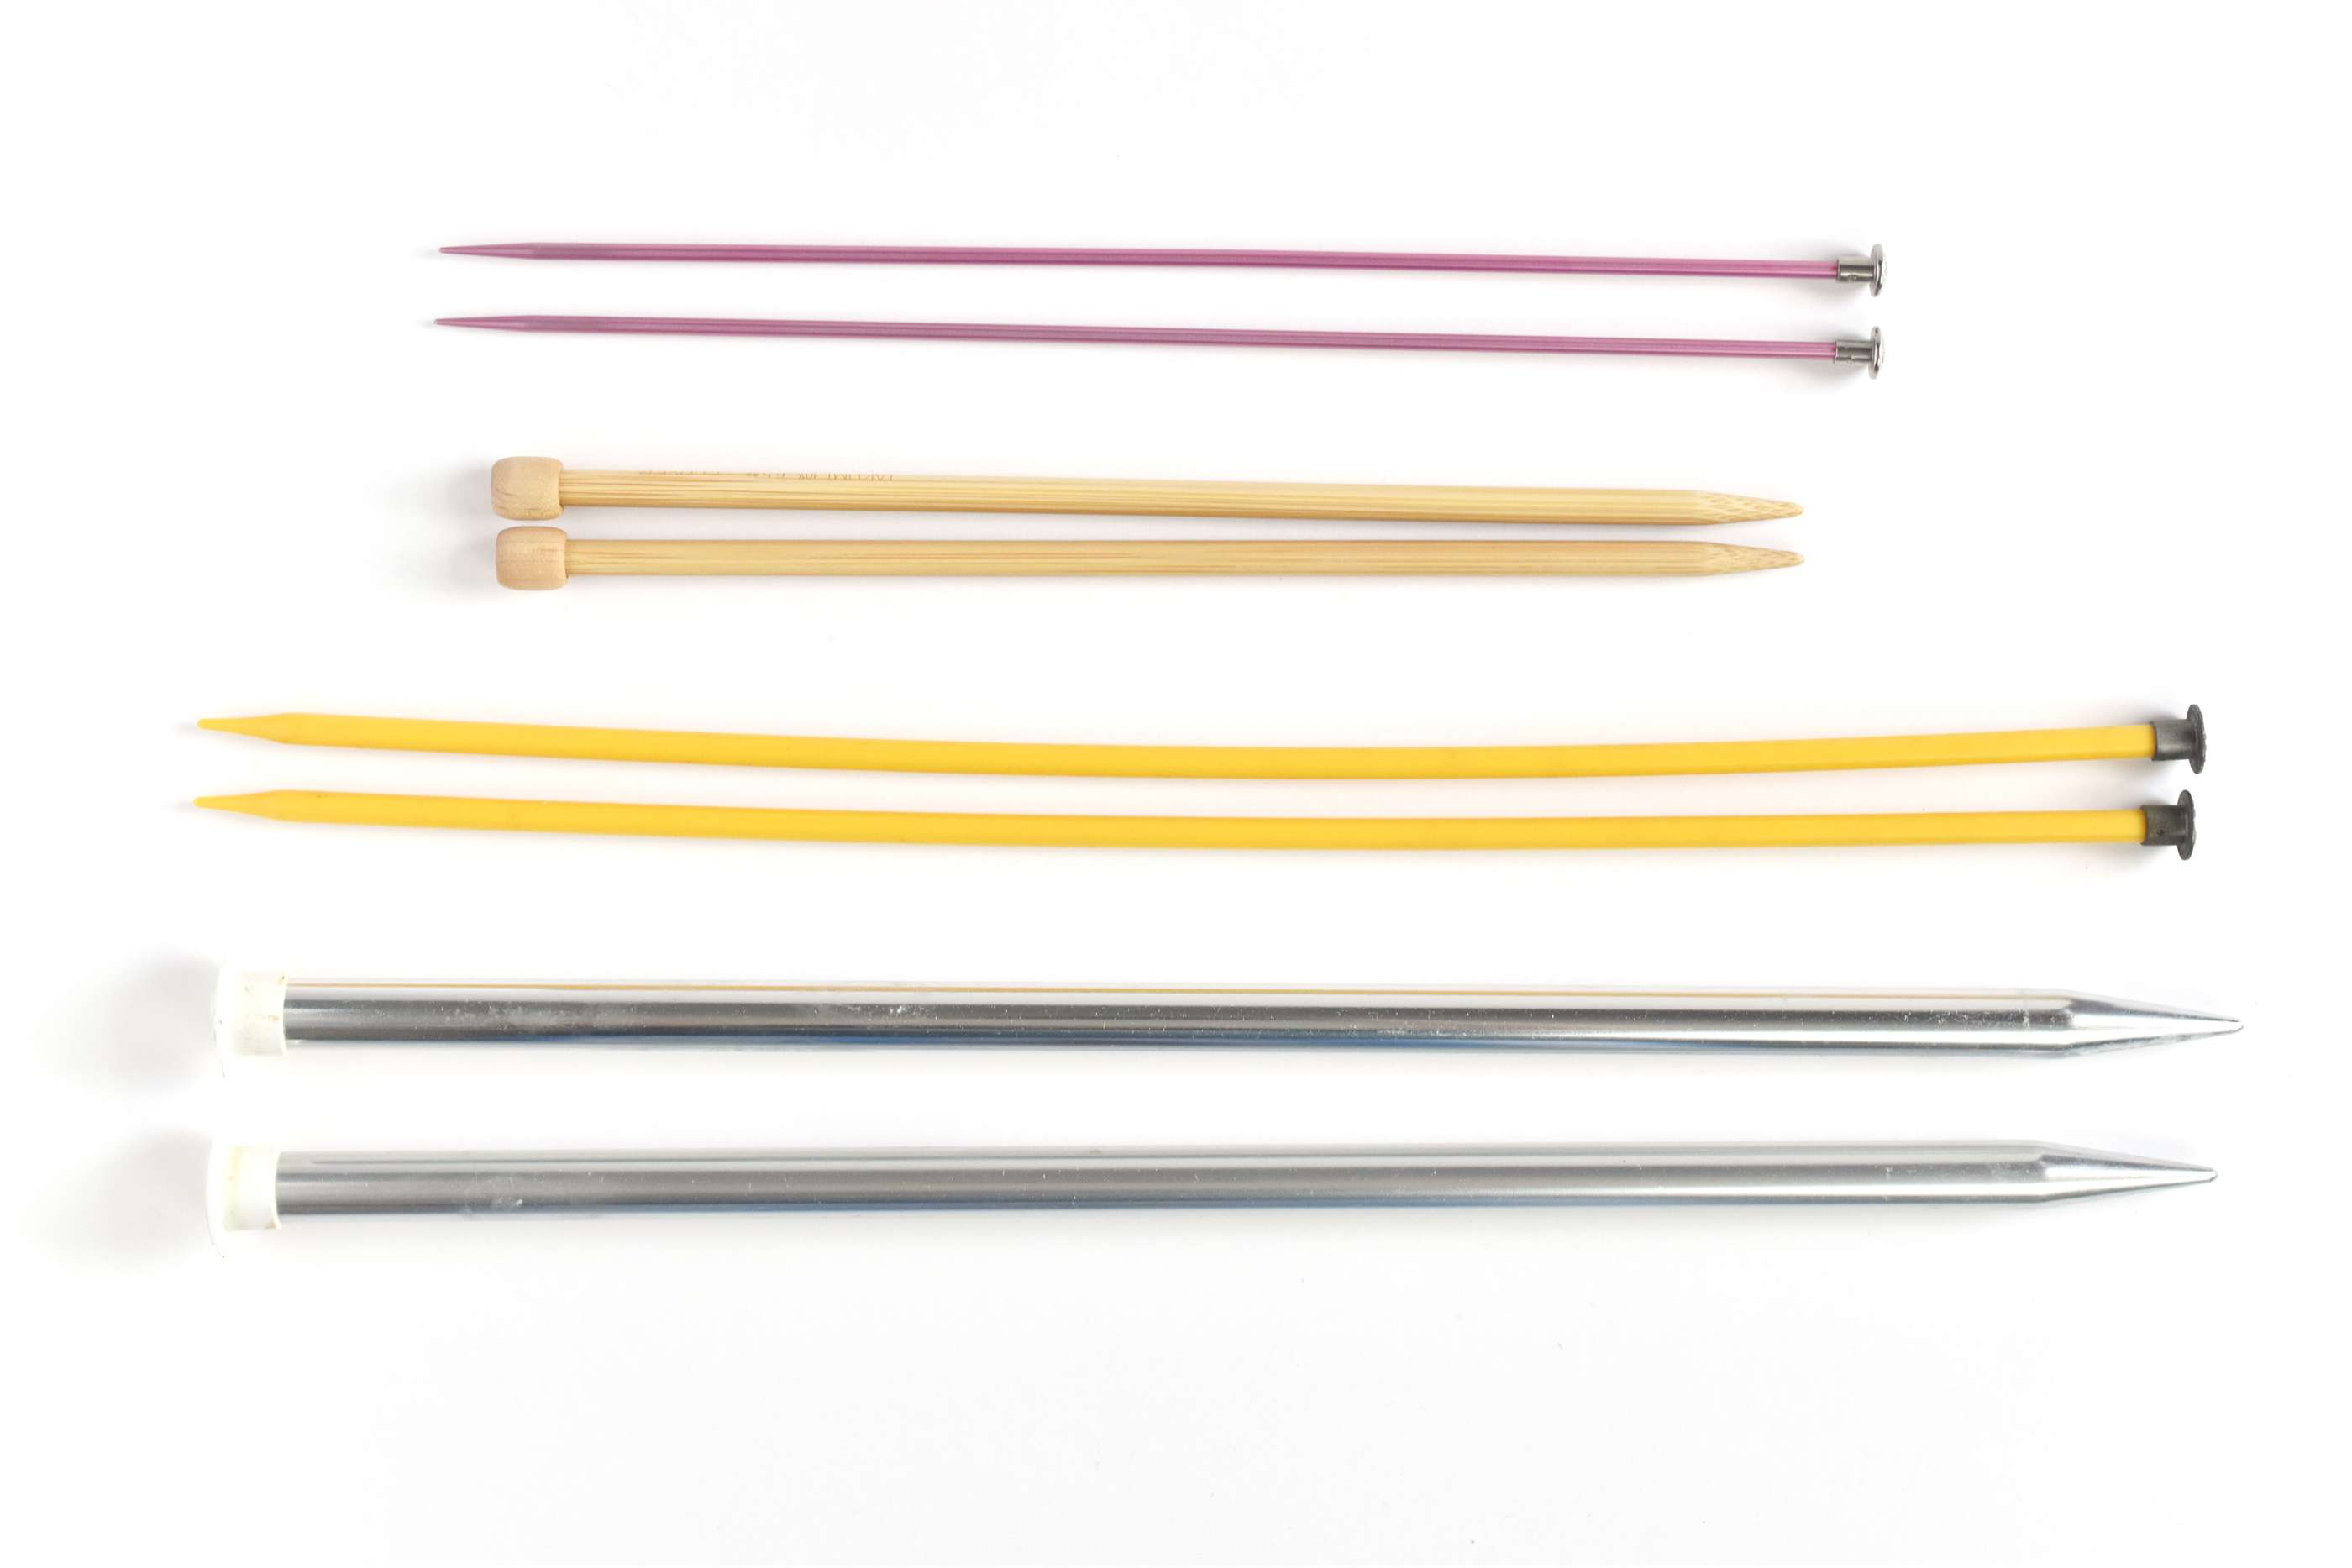 Four Sets of Straight Knitting Needles in Different Sizes and Materials